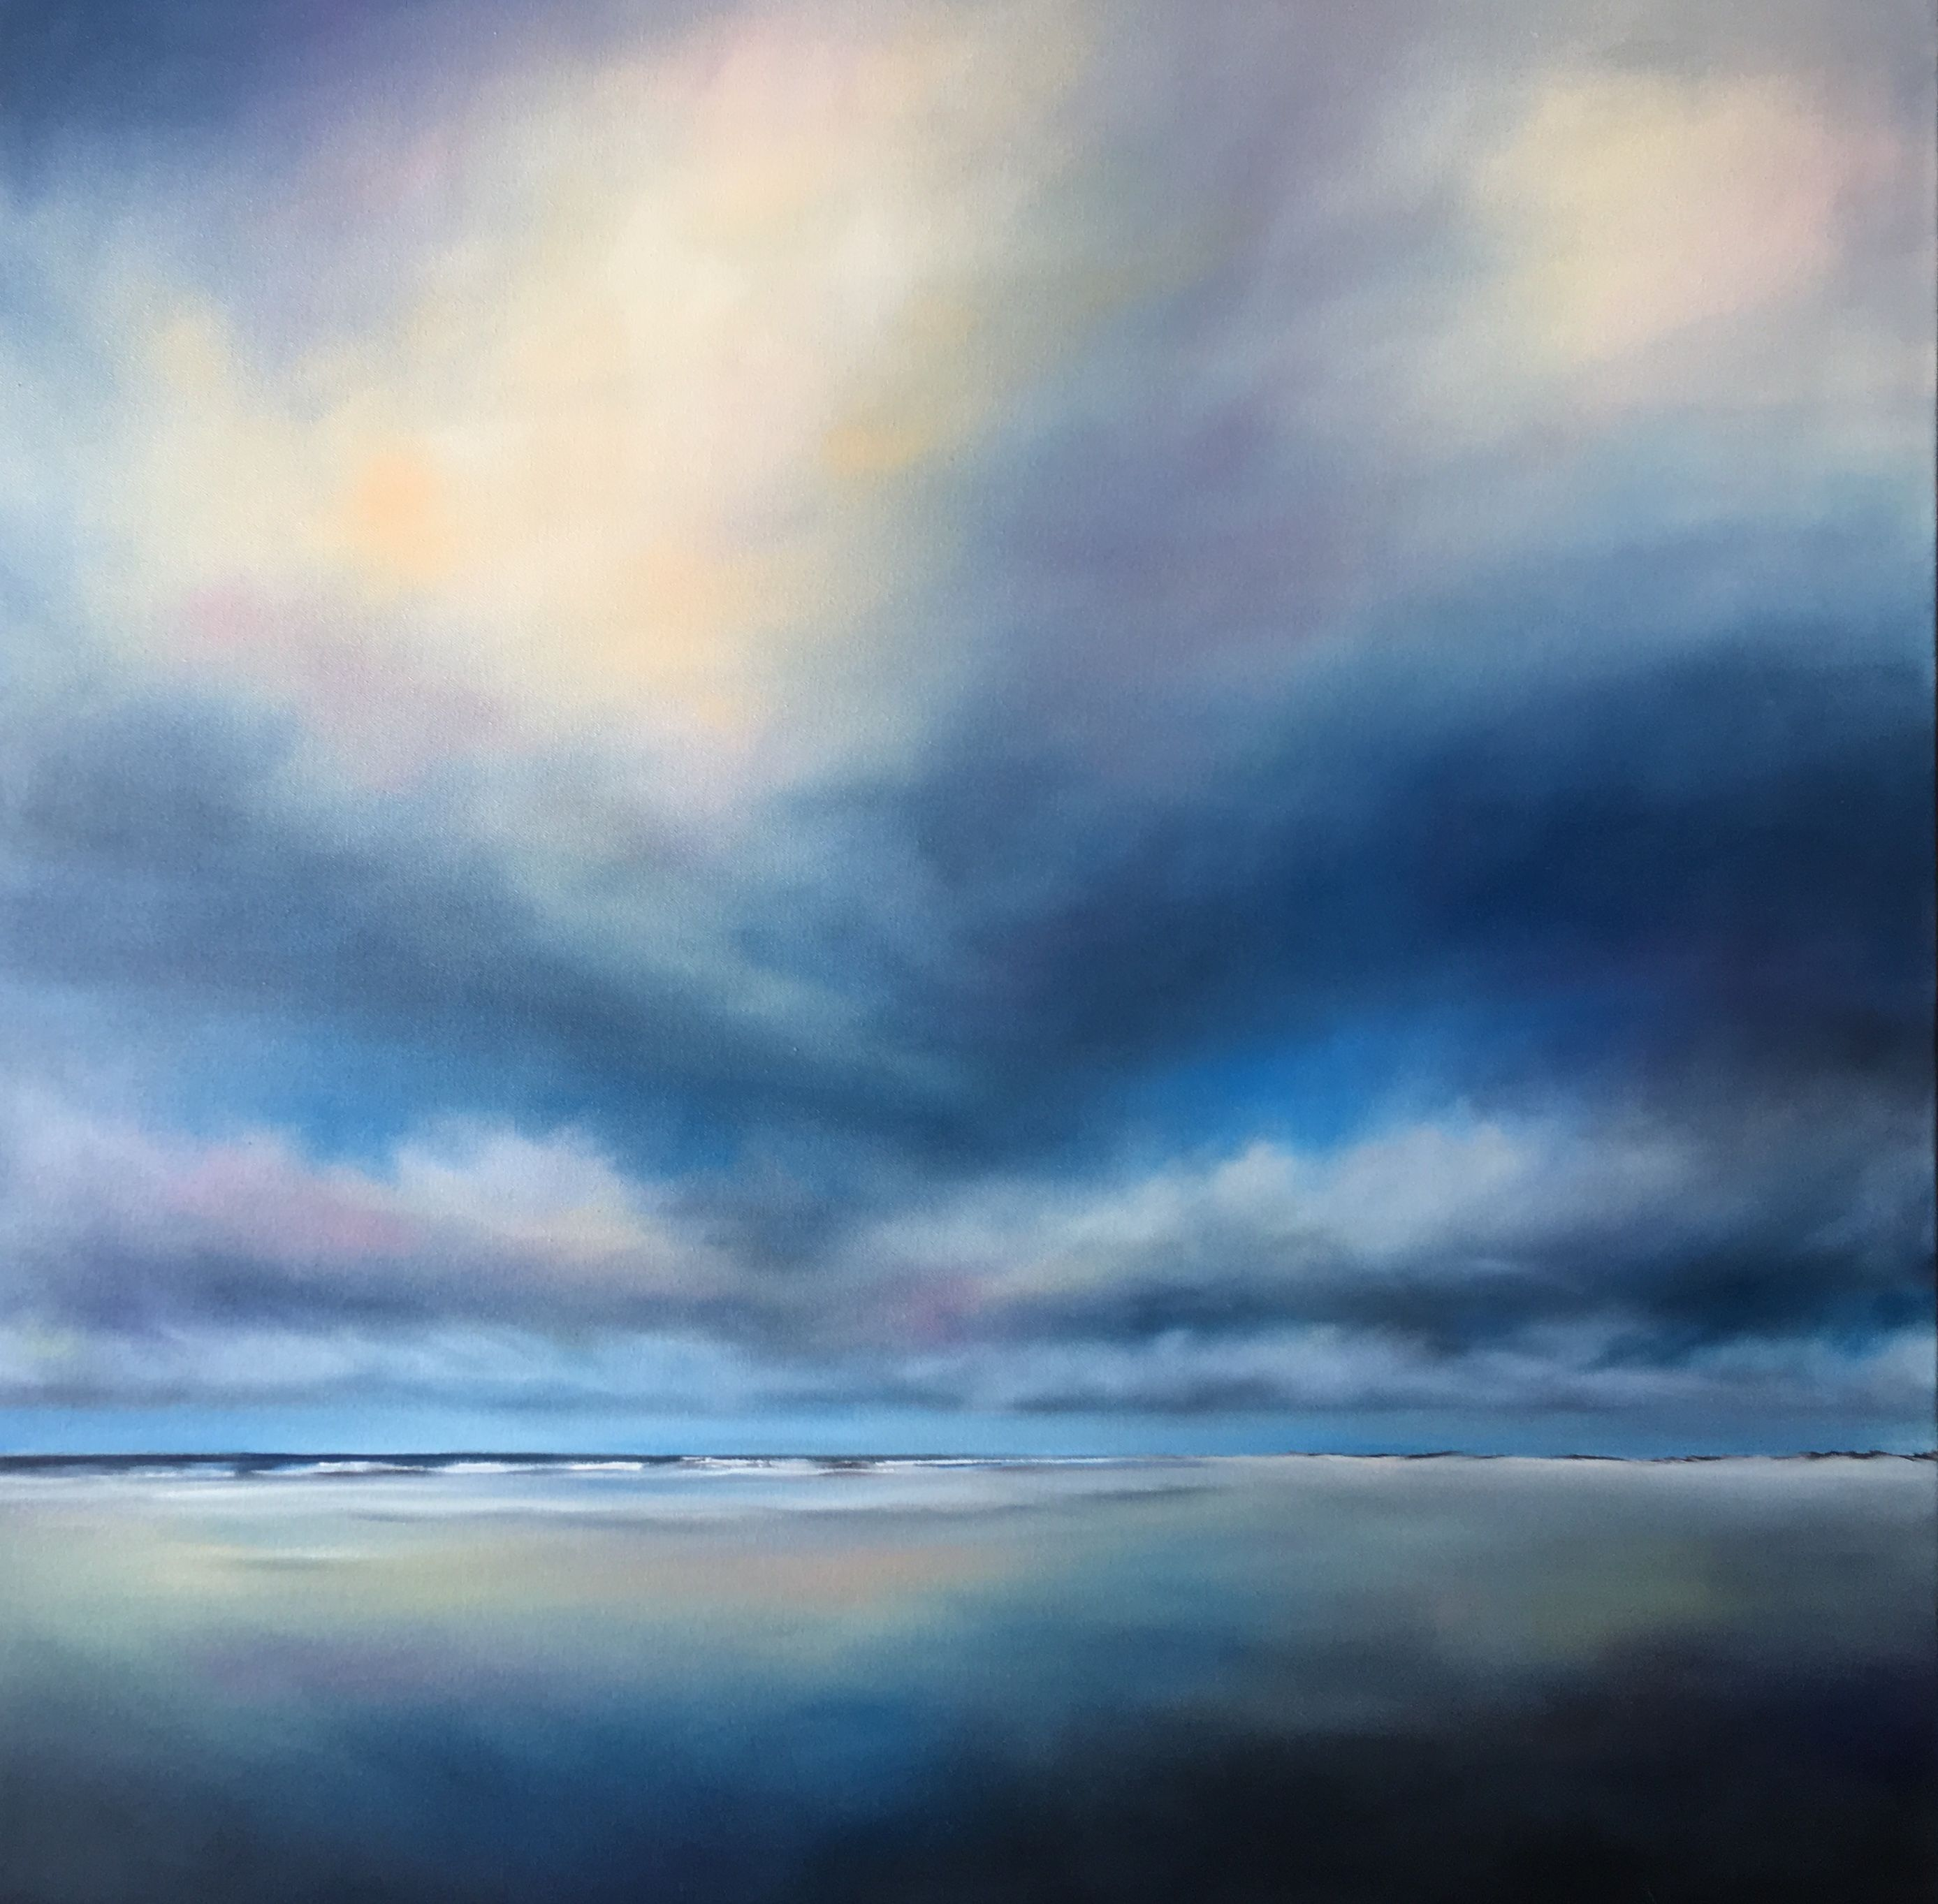 Oil Painting By Nancy Hughes Miller Ocean Sky 40x40x1 5 Inches Dream Higher Than The Sky And Deeper Tha Seascape Paintings Ocean Painting Aesthetic Painting